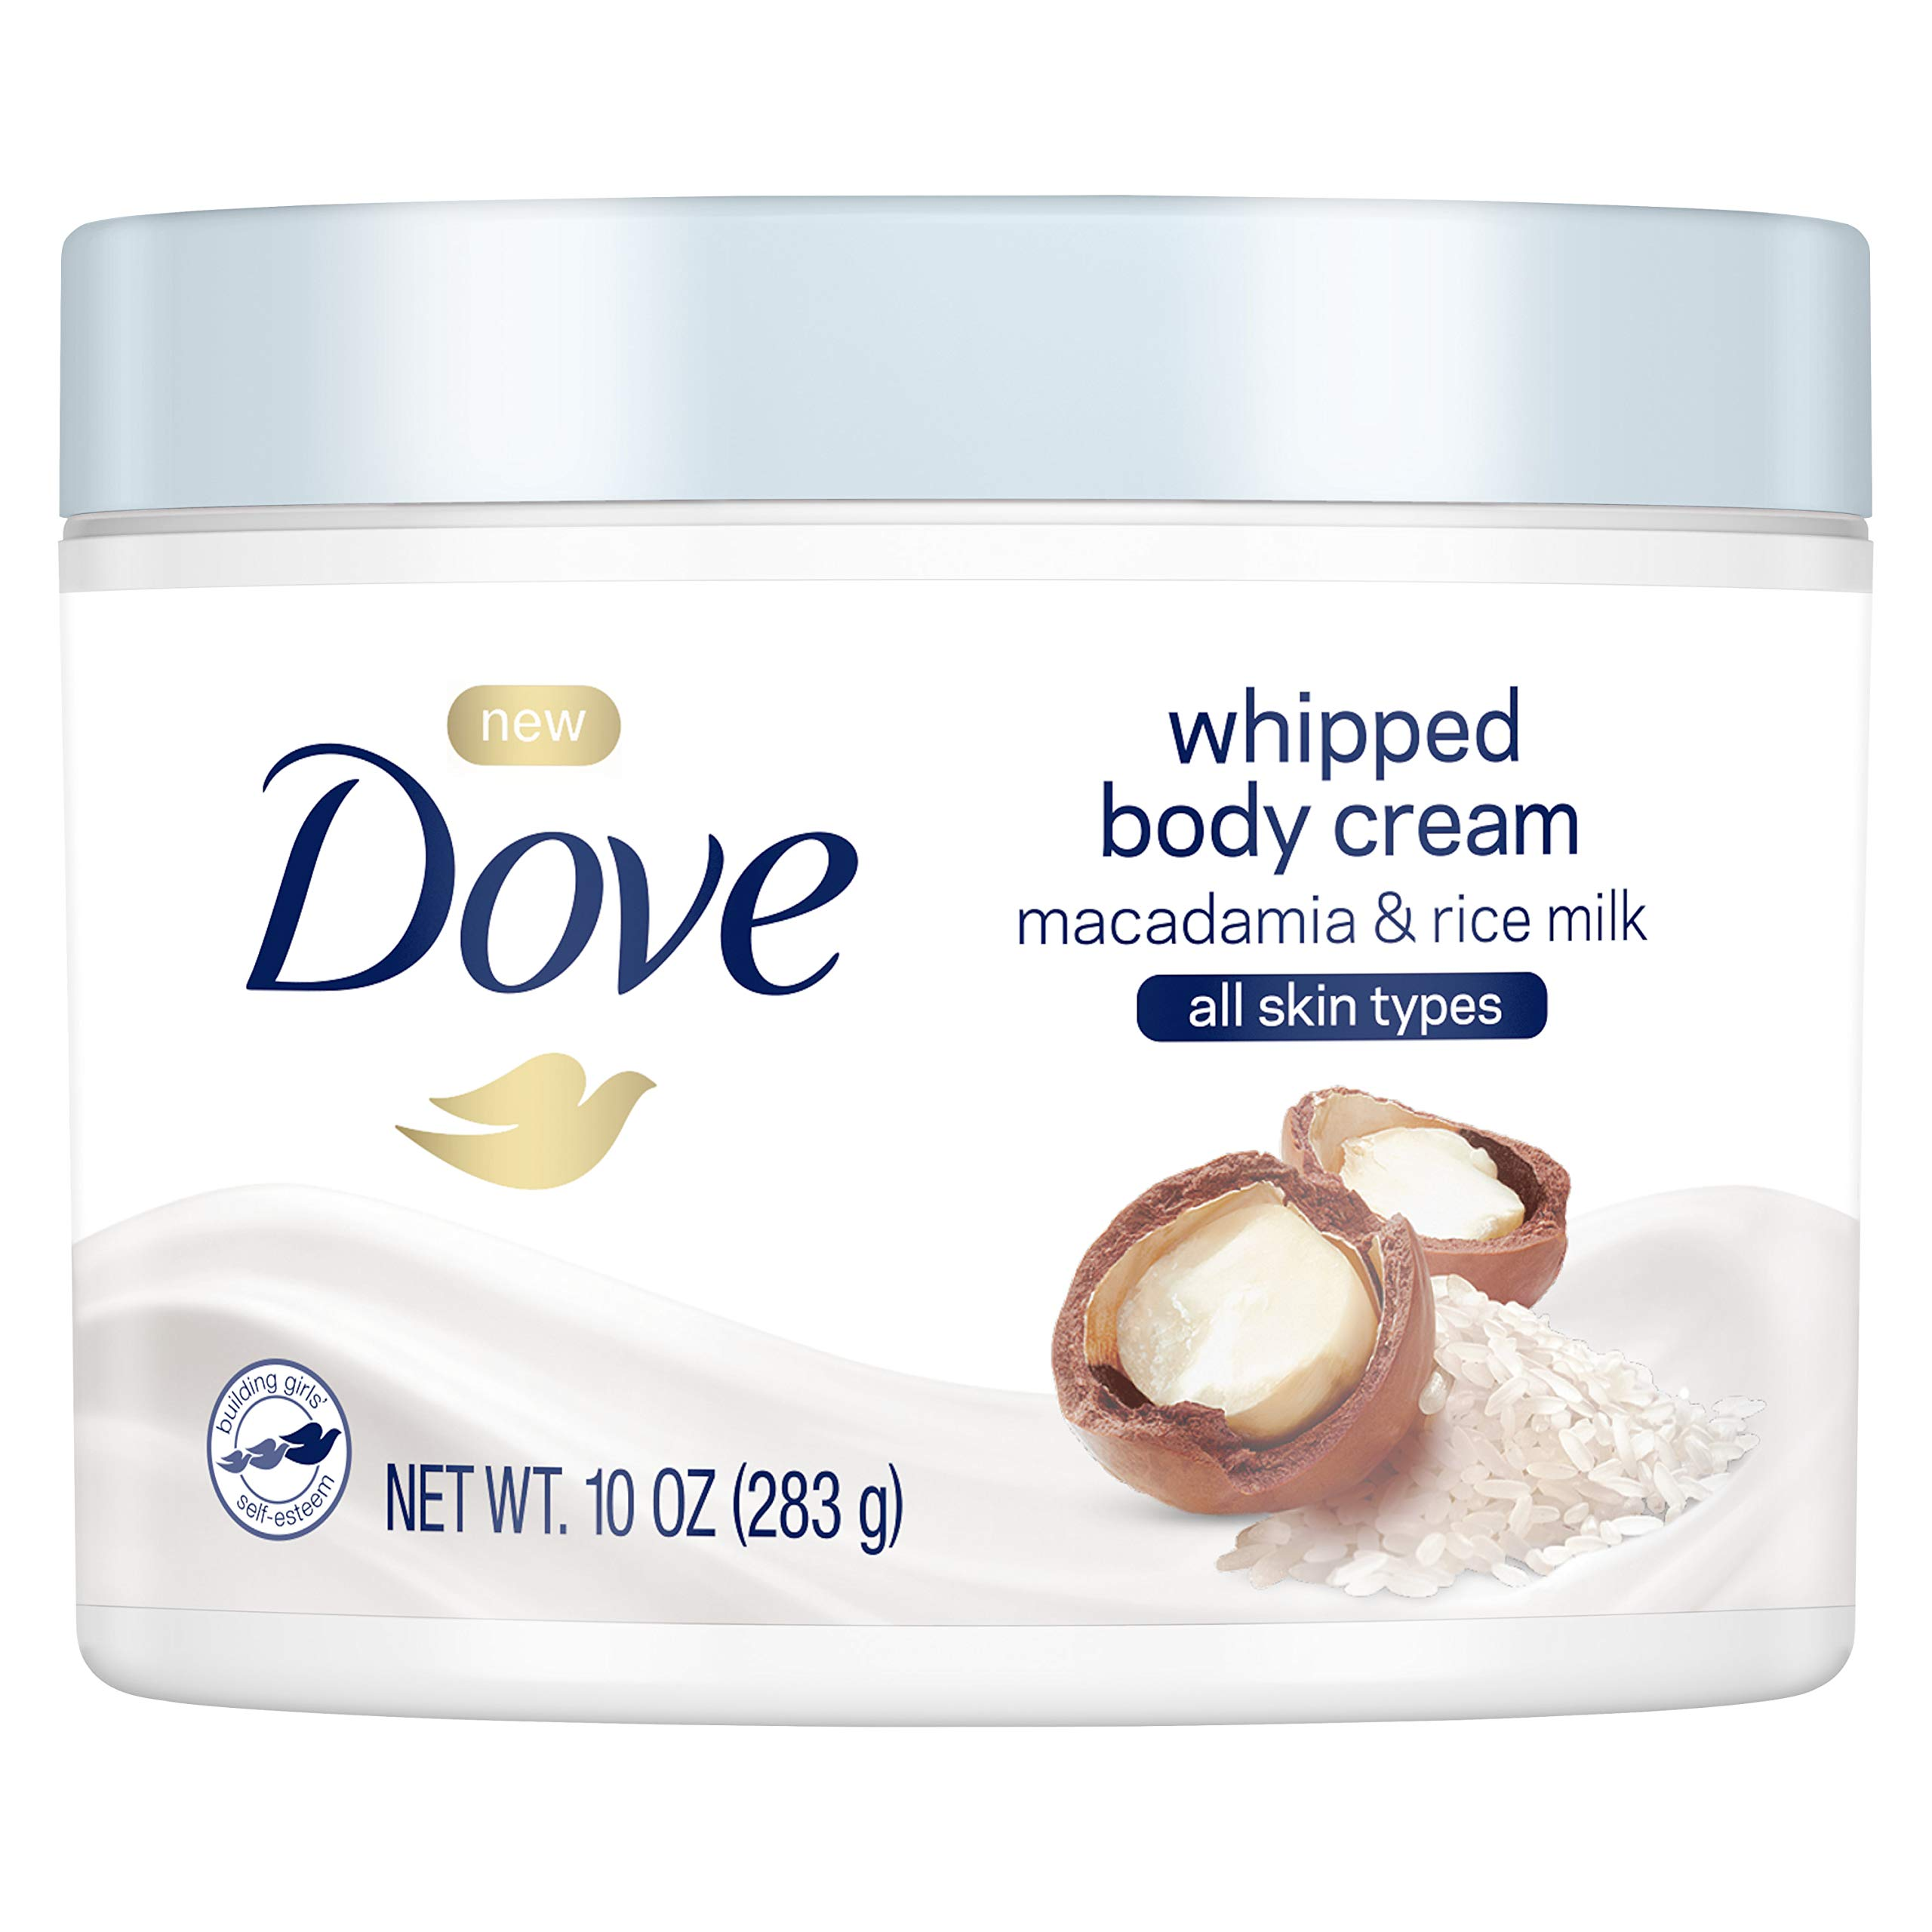 Dove Whipped Macadamia and Rice Milk Body Cream 10 oz